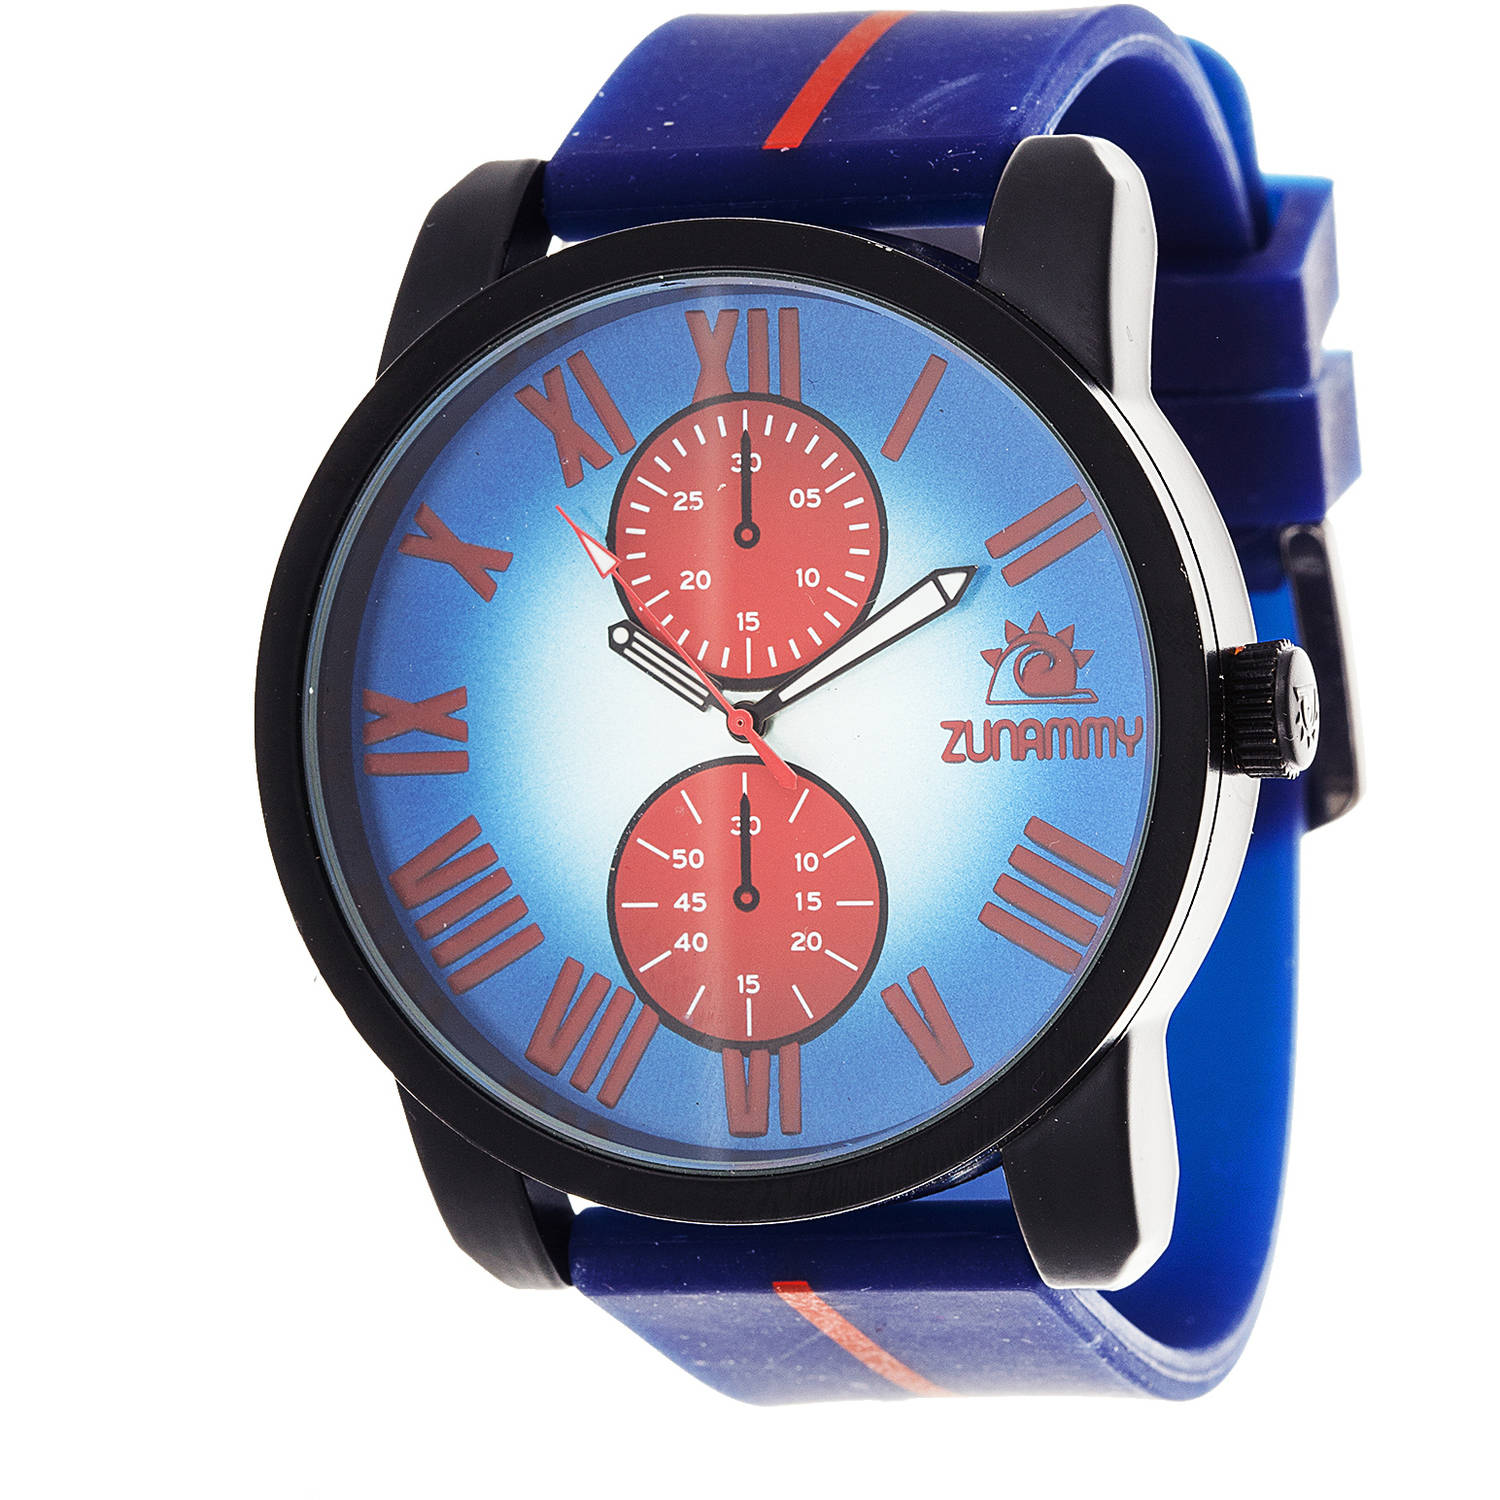 Zunammy Matte Men's Sport and Fashion Watch, Blue Rubber Strap